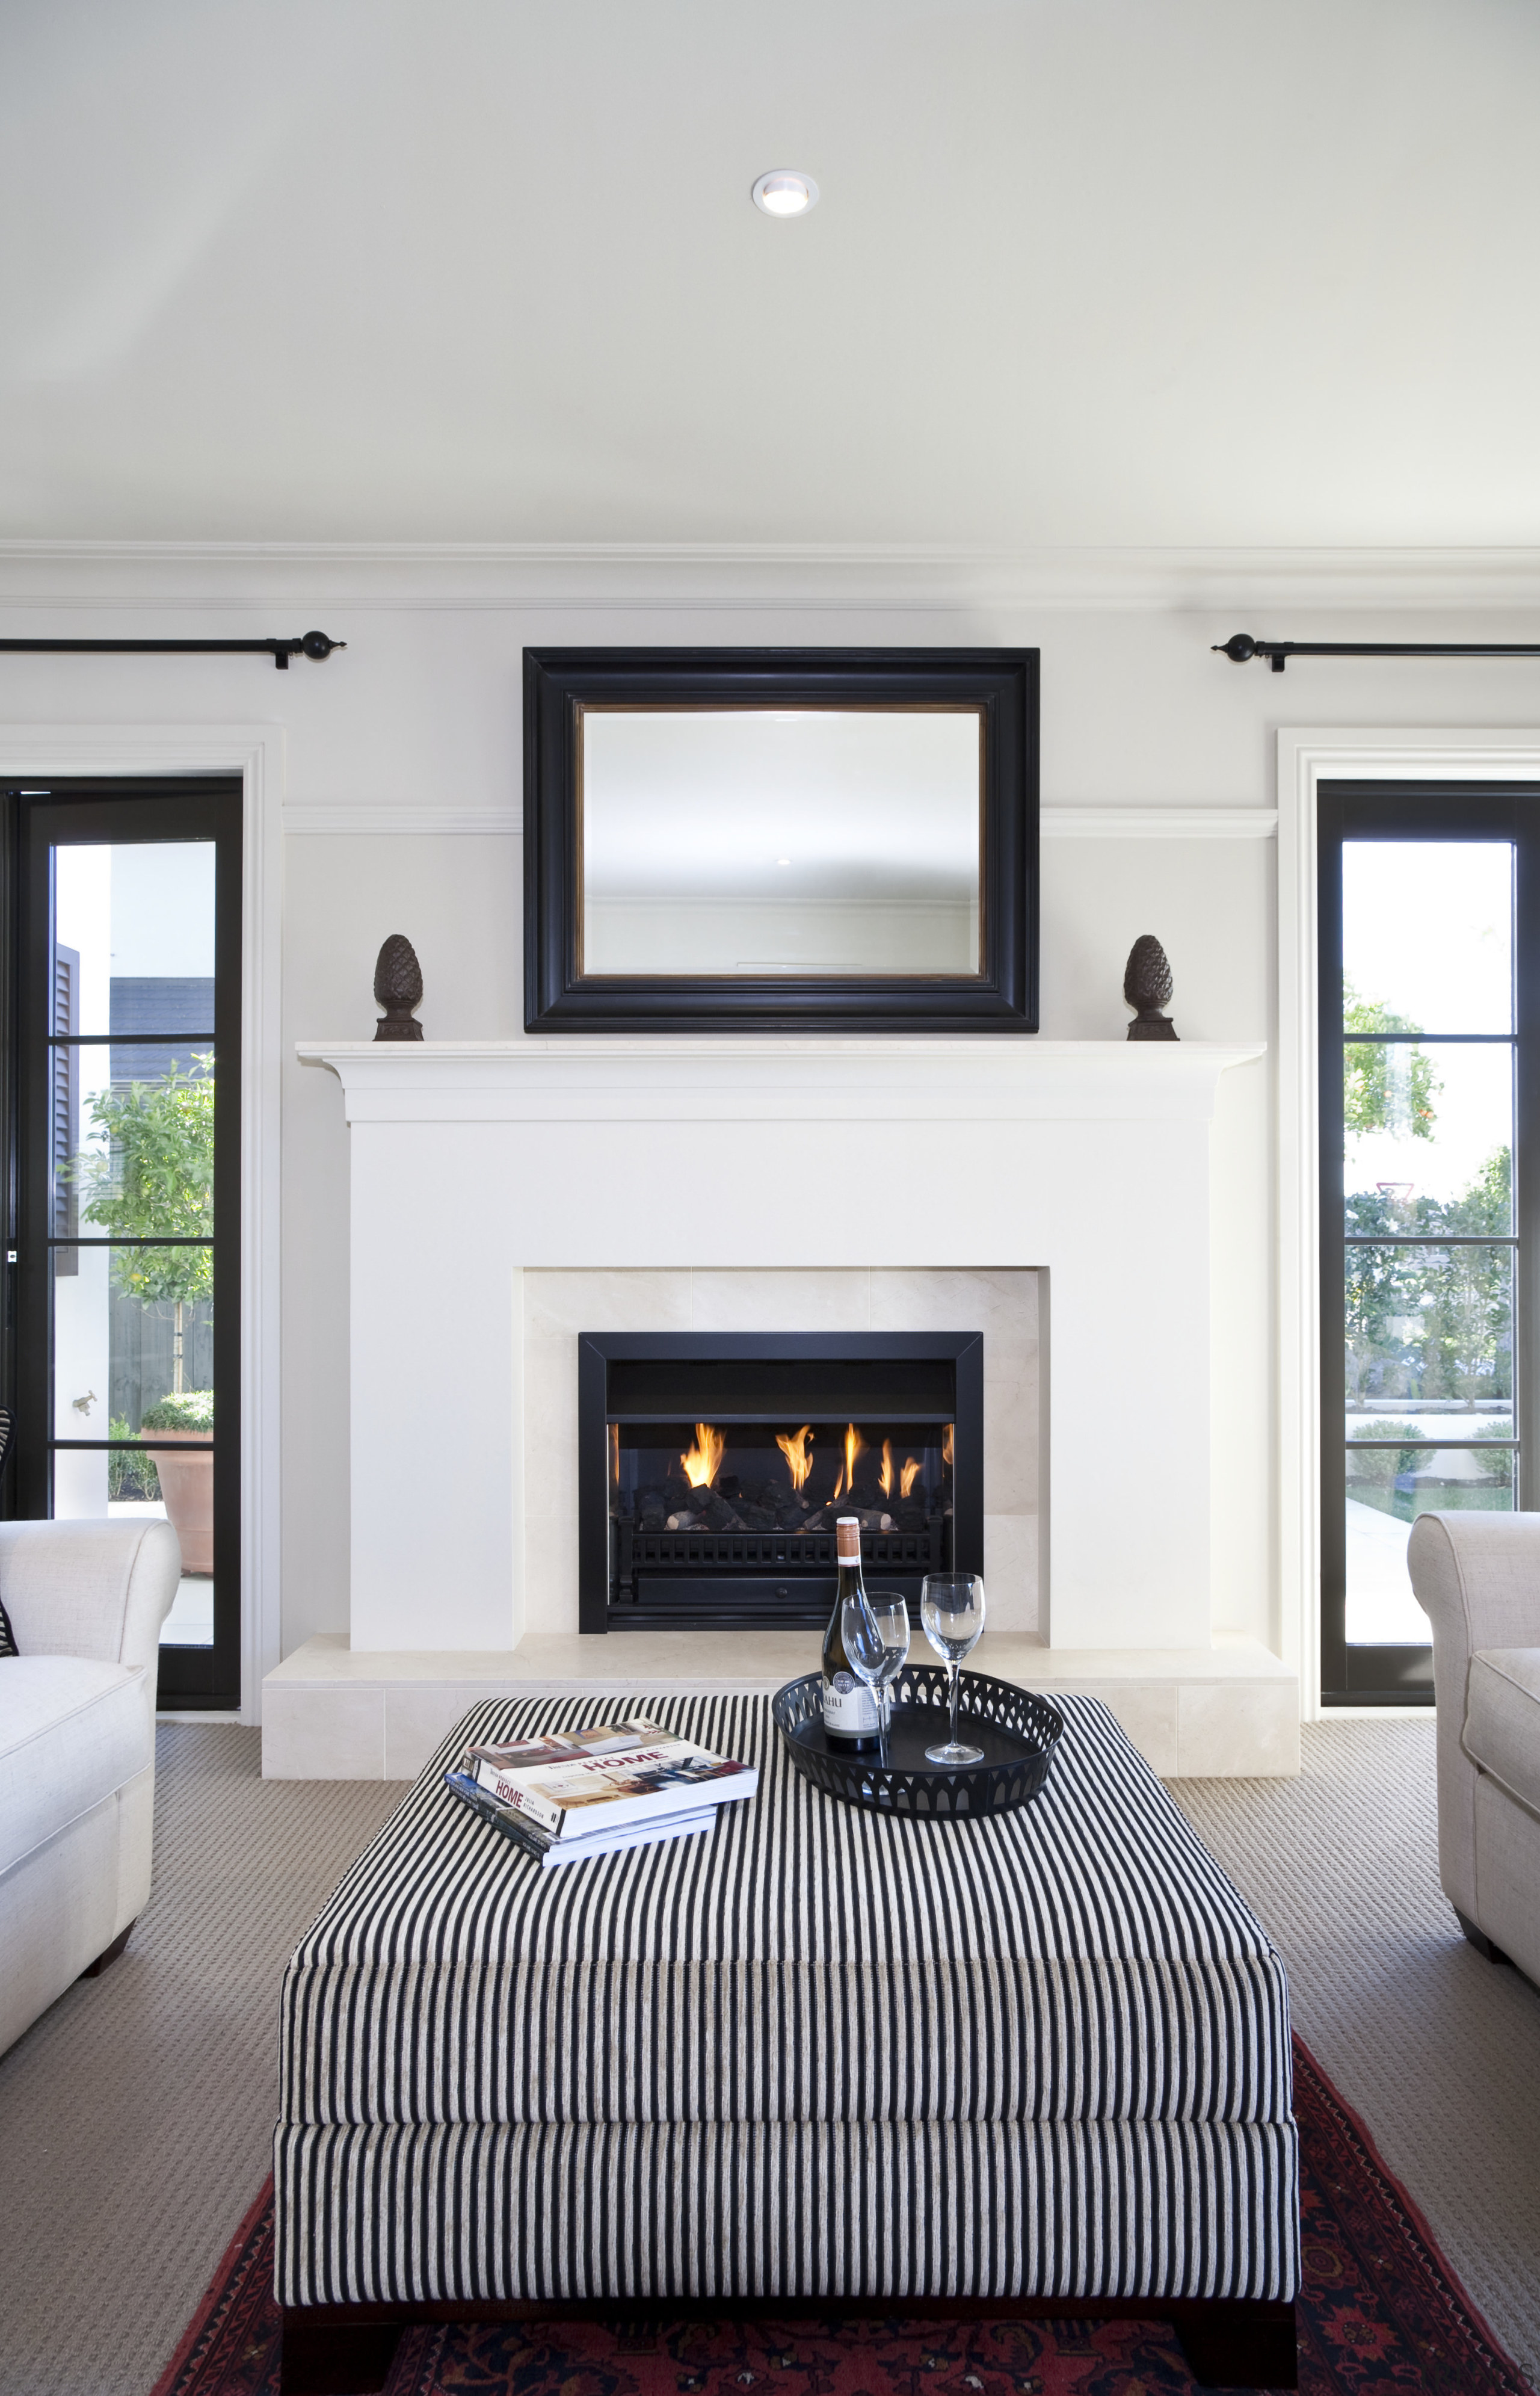 View of the lounge area which features sofas, ceiling, fireplace, floor, hearth, home, interior design, living room, room, window, white